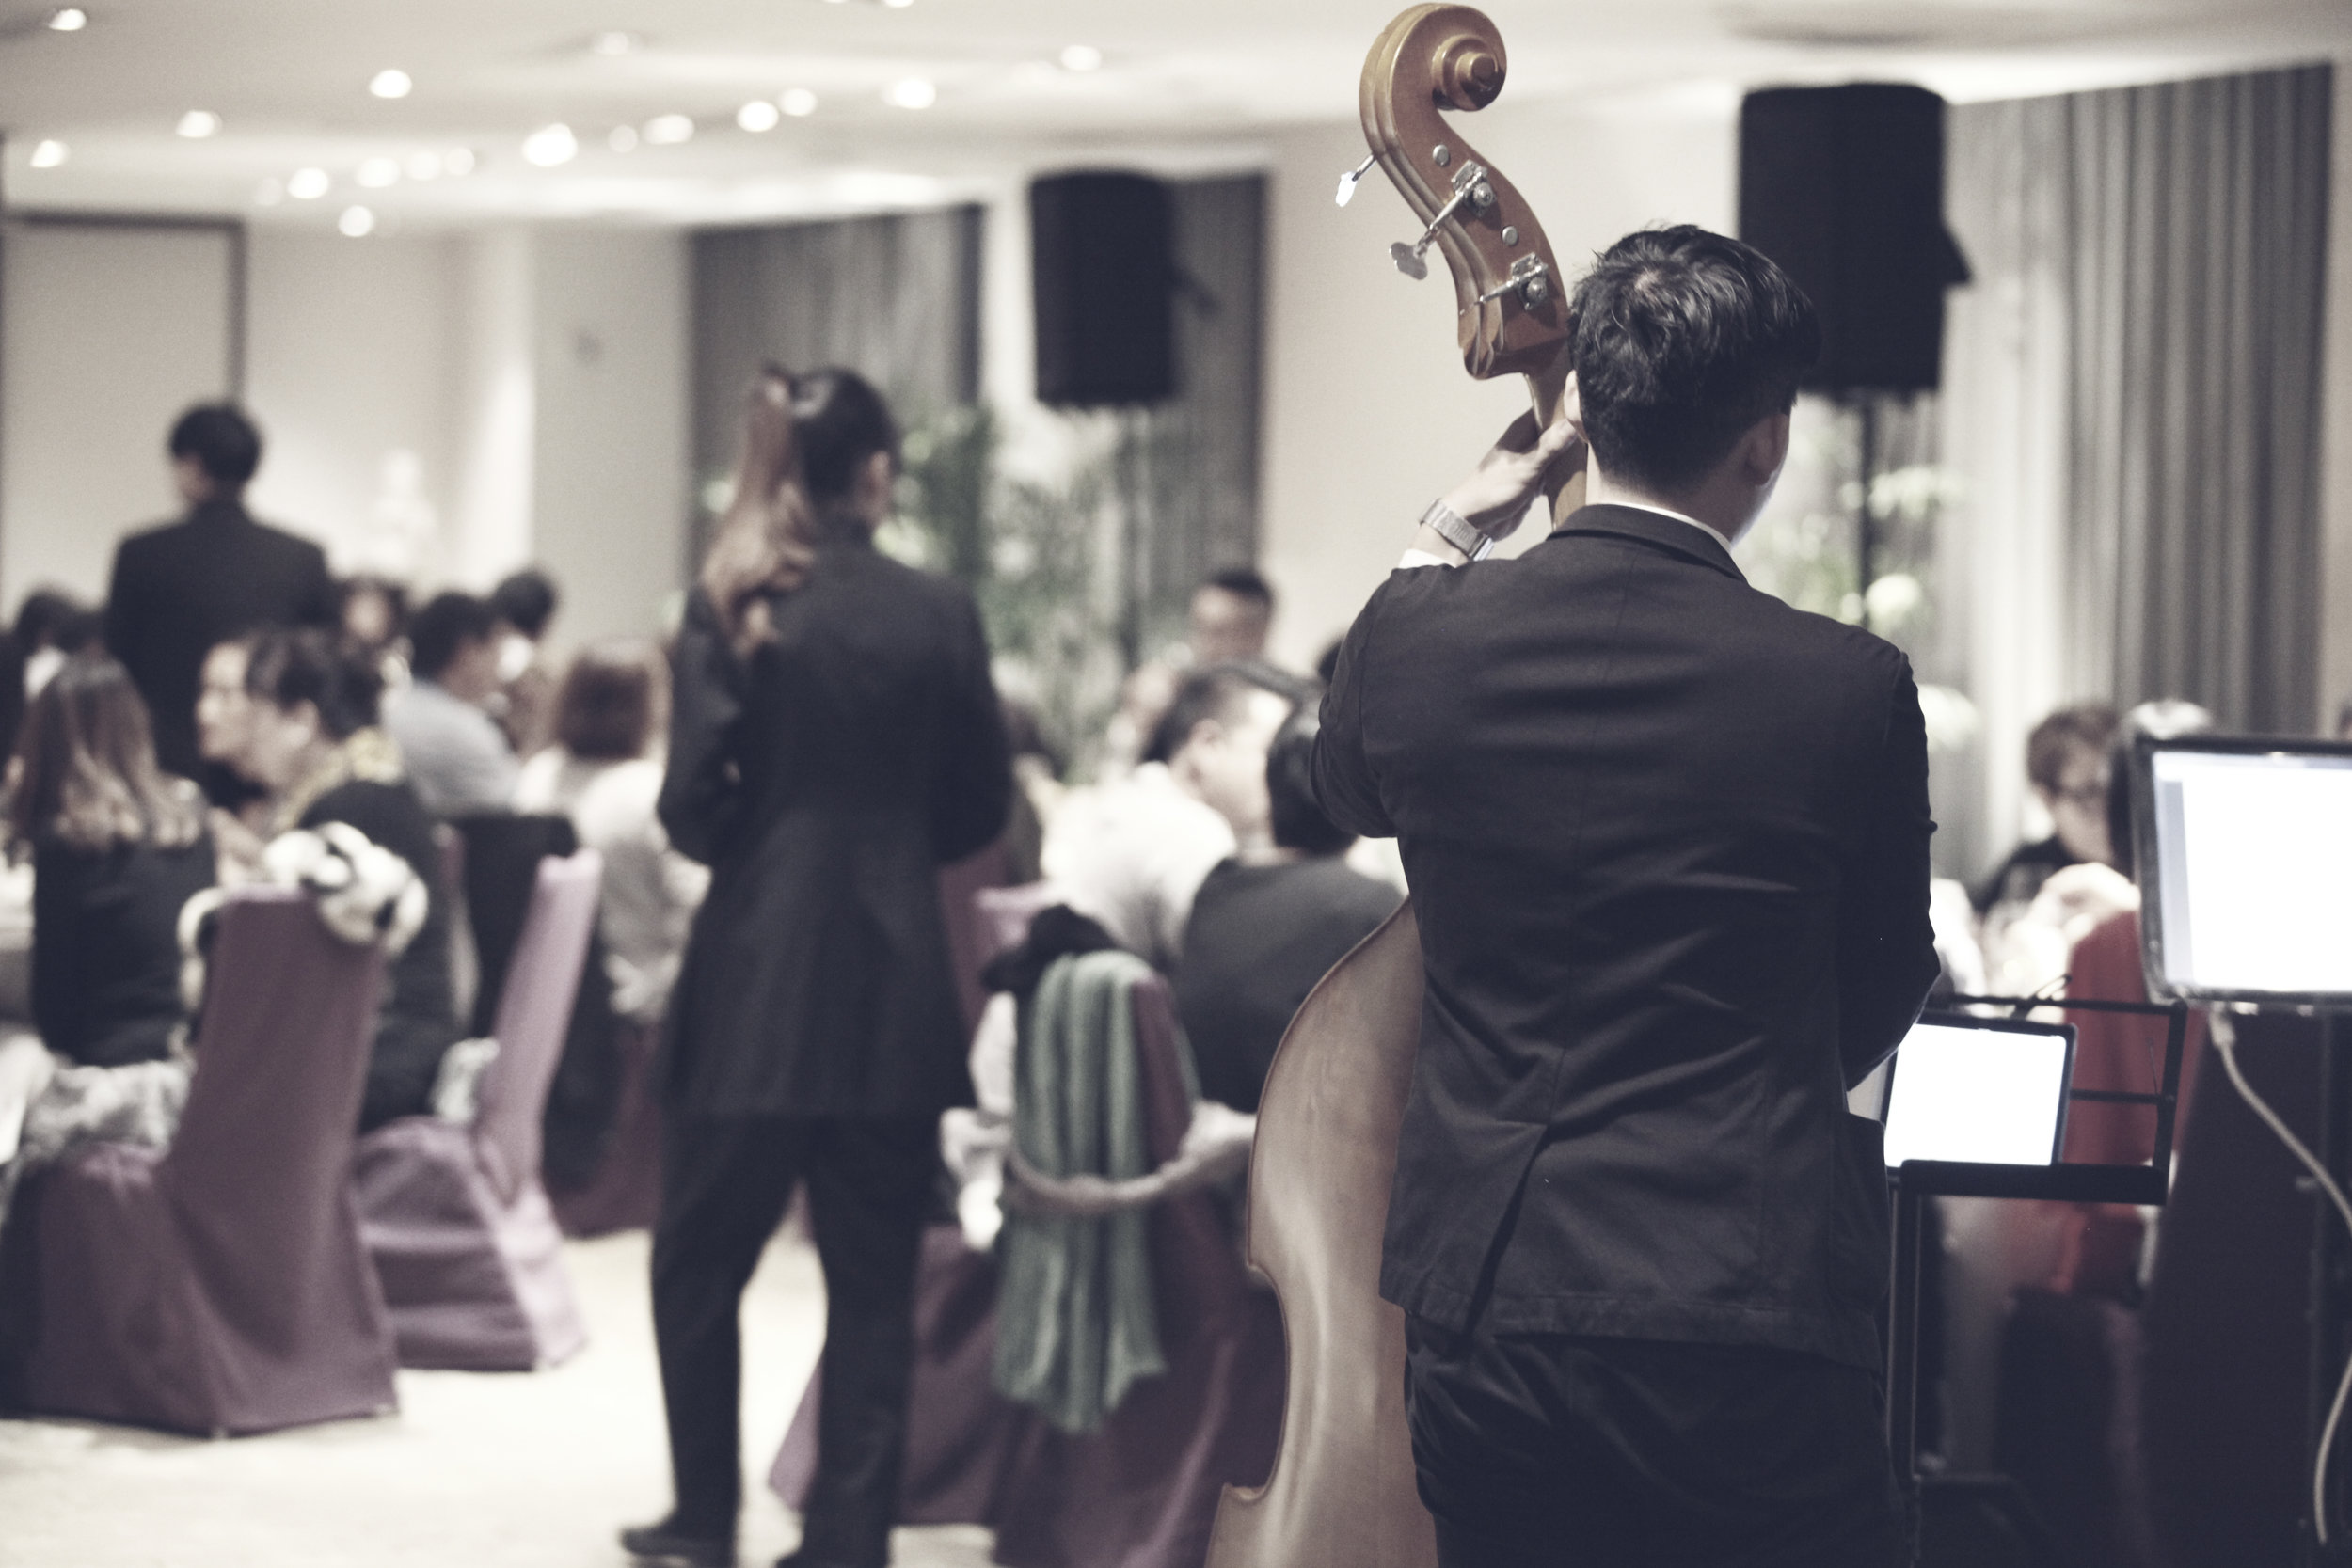 Corporate Events - Professional planning for all types of services for corporations that include but not limited to Christmas Parties, Catering for events, Company Milestones and Grand Openings.